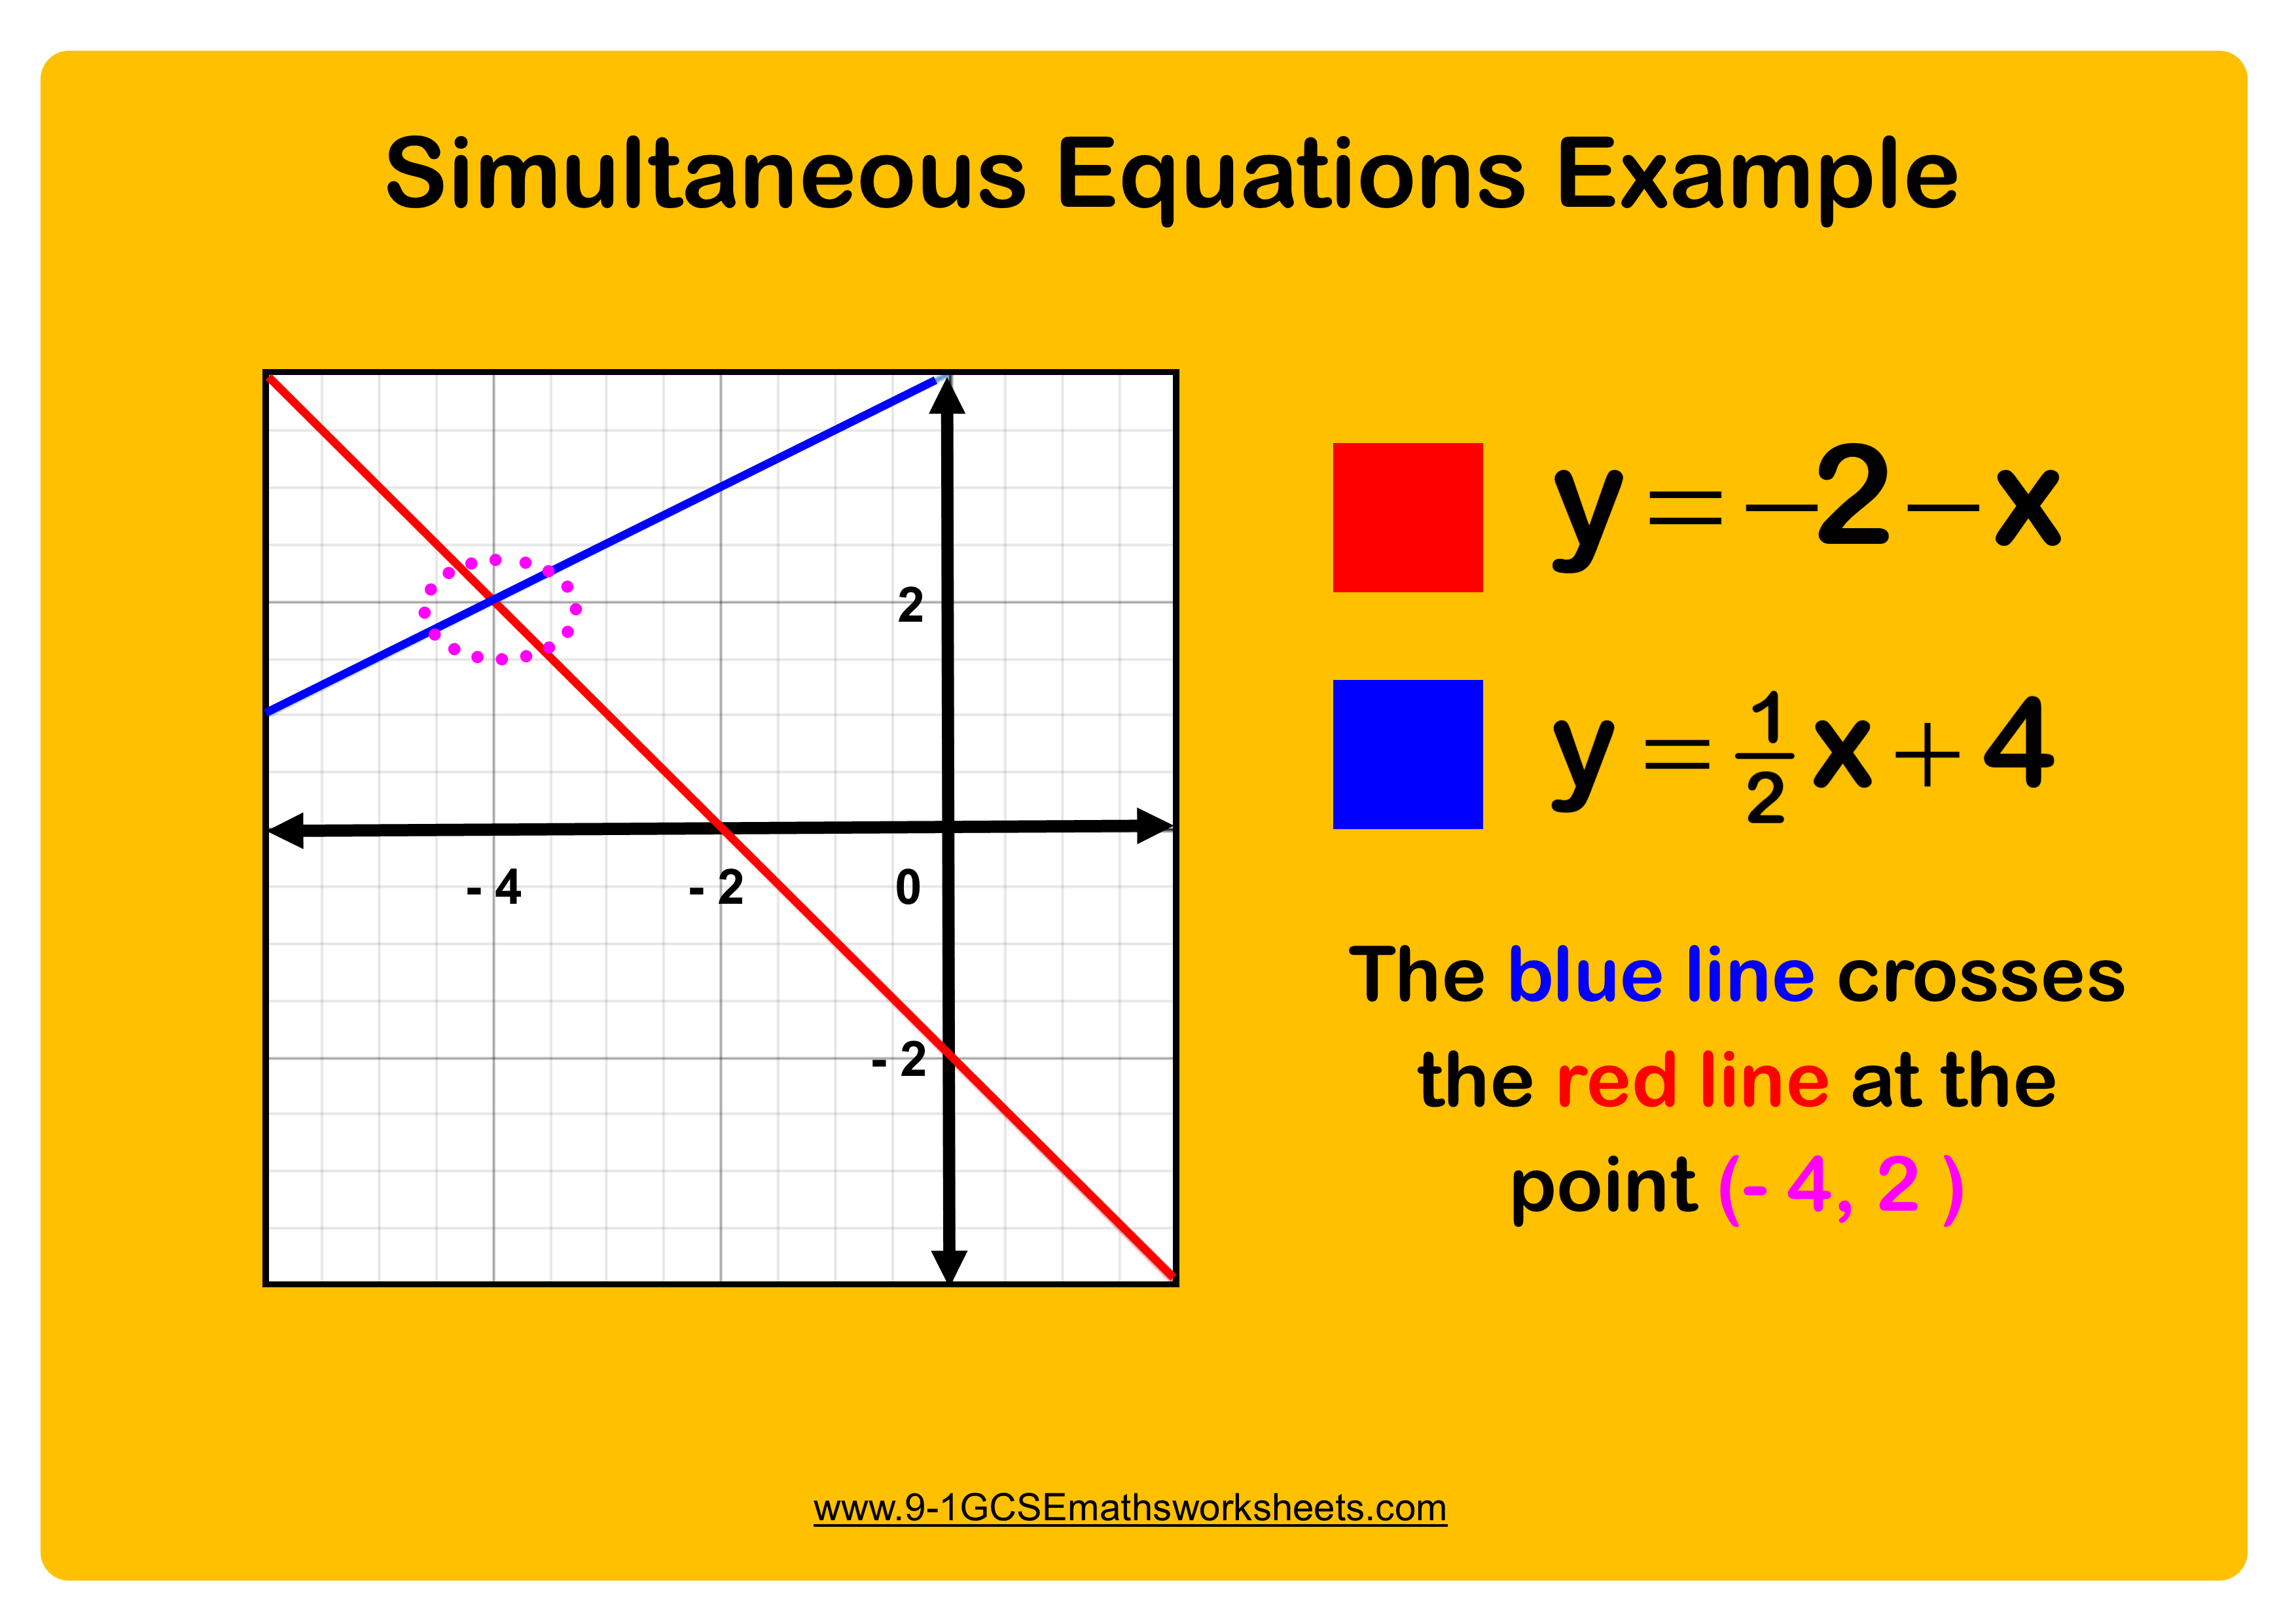 Simultaneous Equations Example